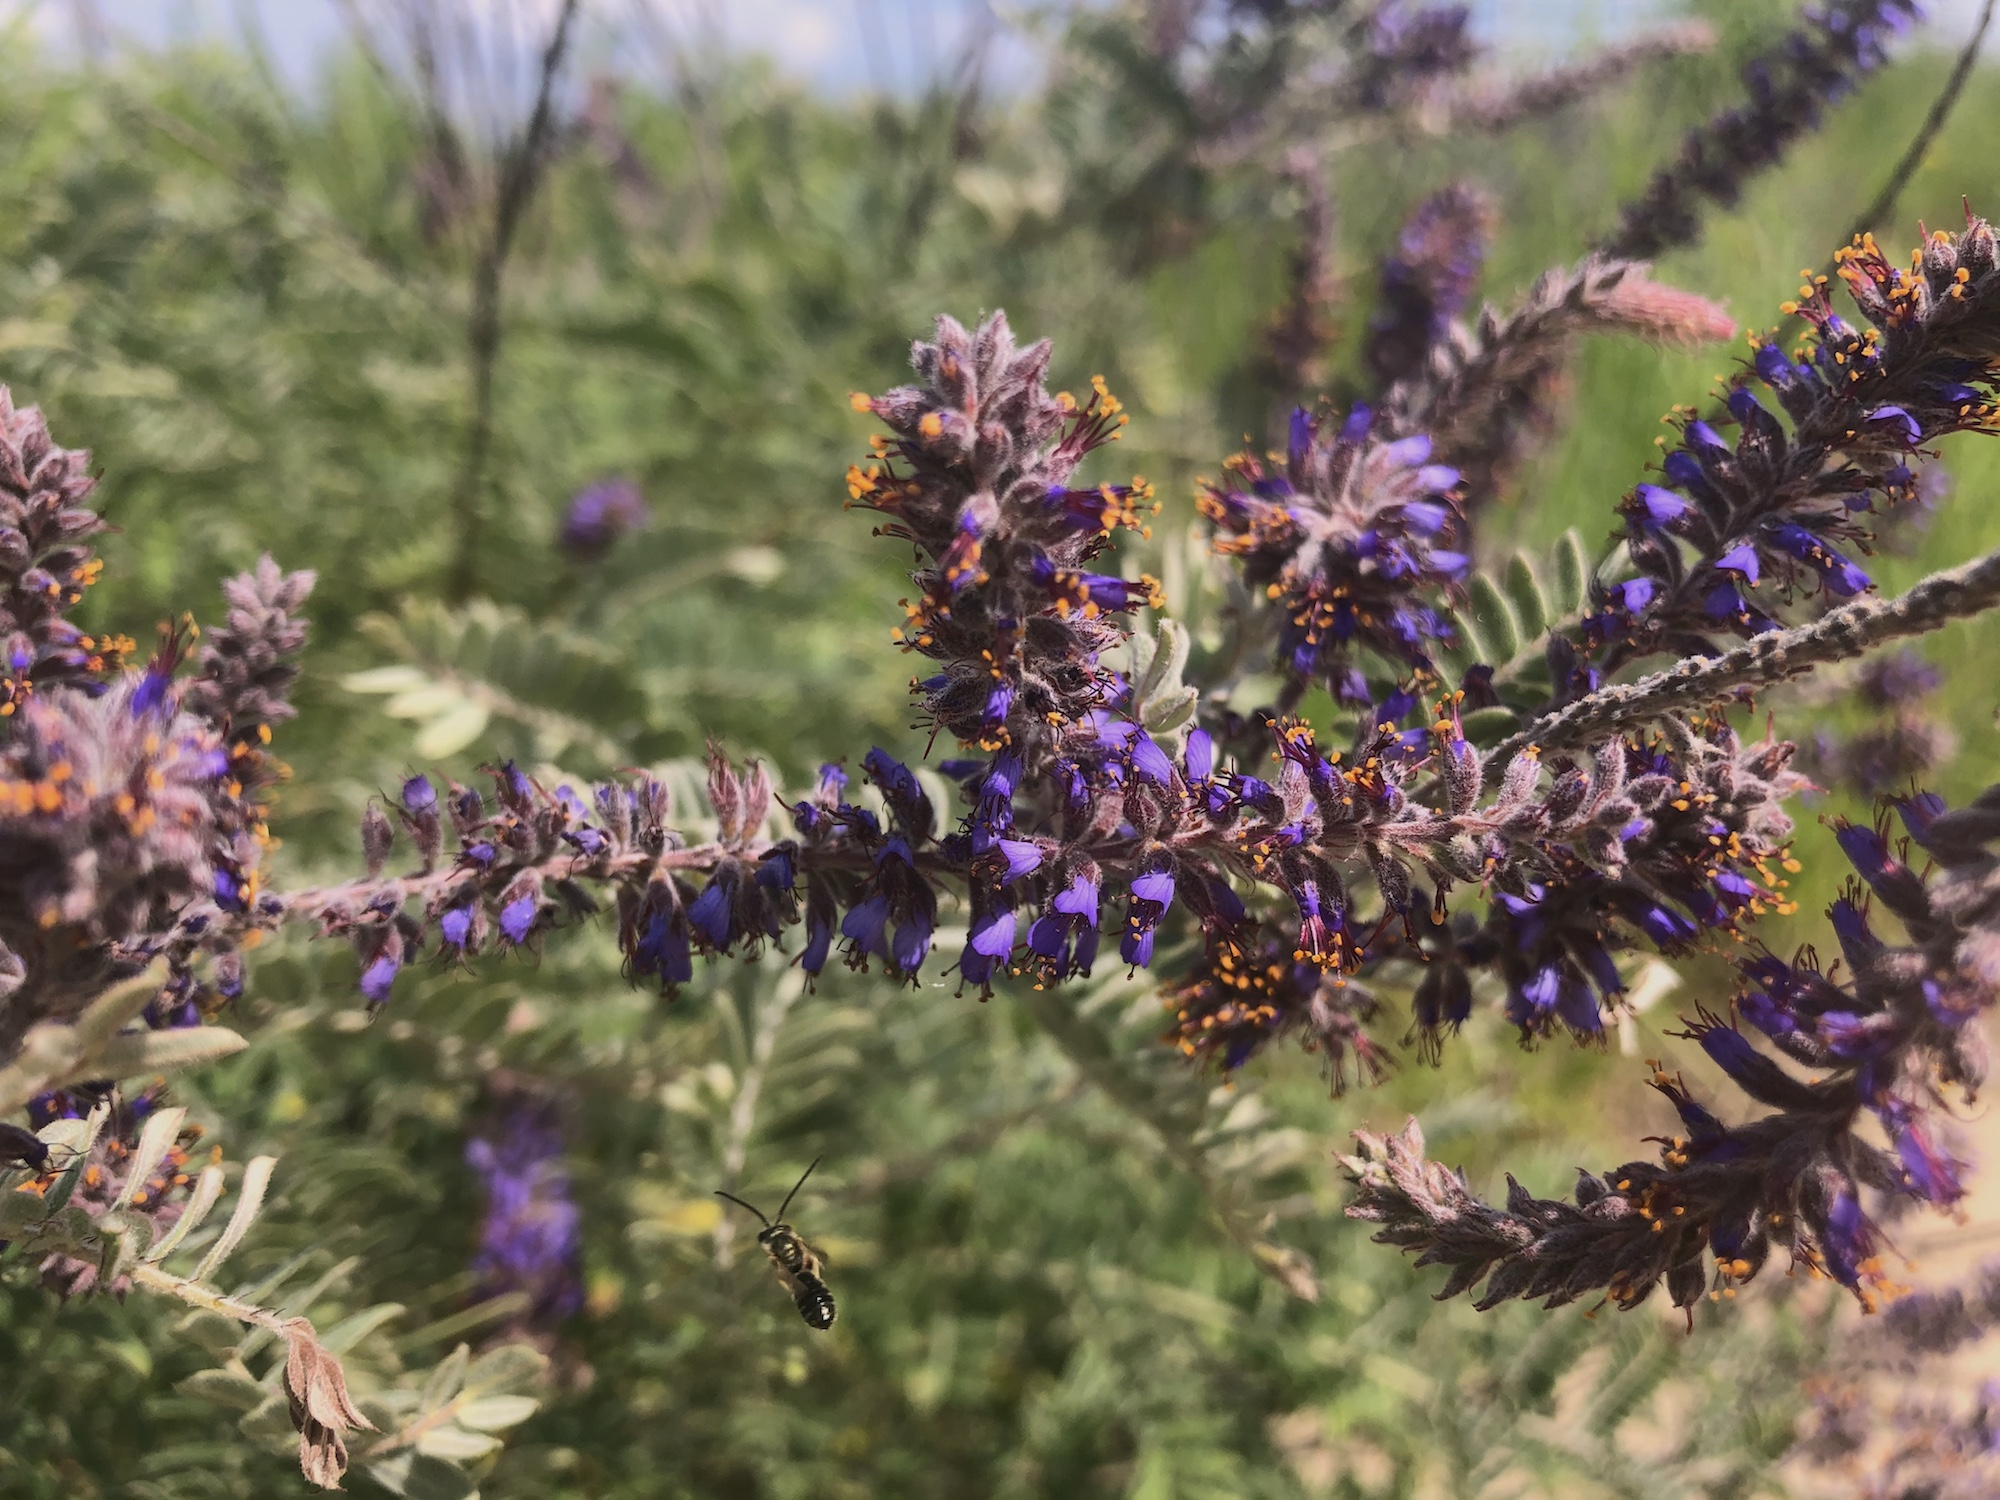 Leadplant next to the UW Arboretum Visitors Center parking lot on July 1, 2020.